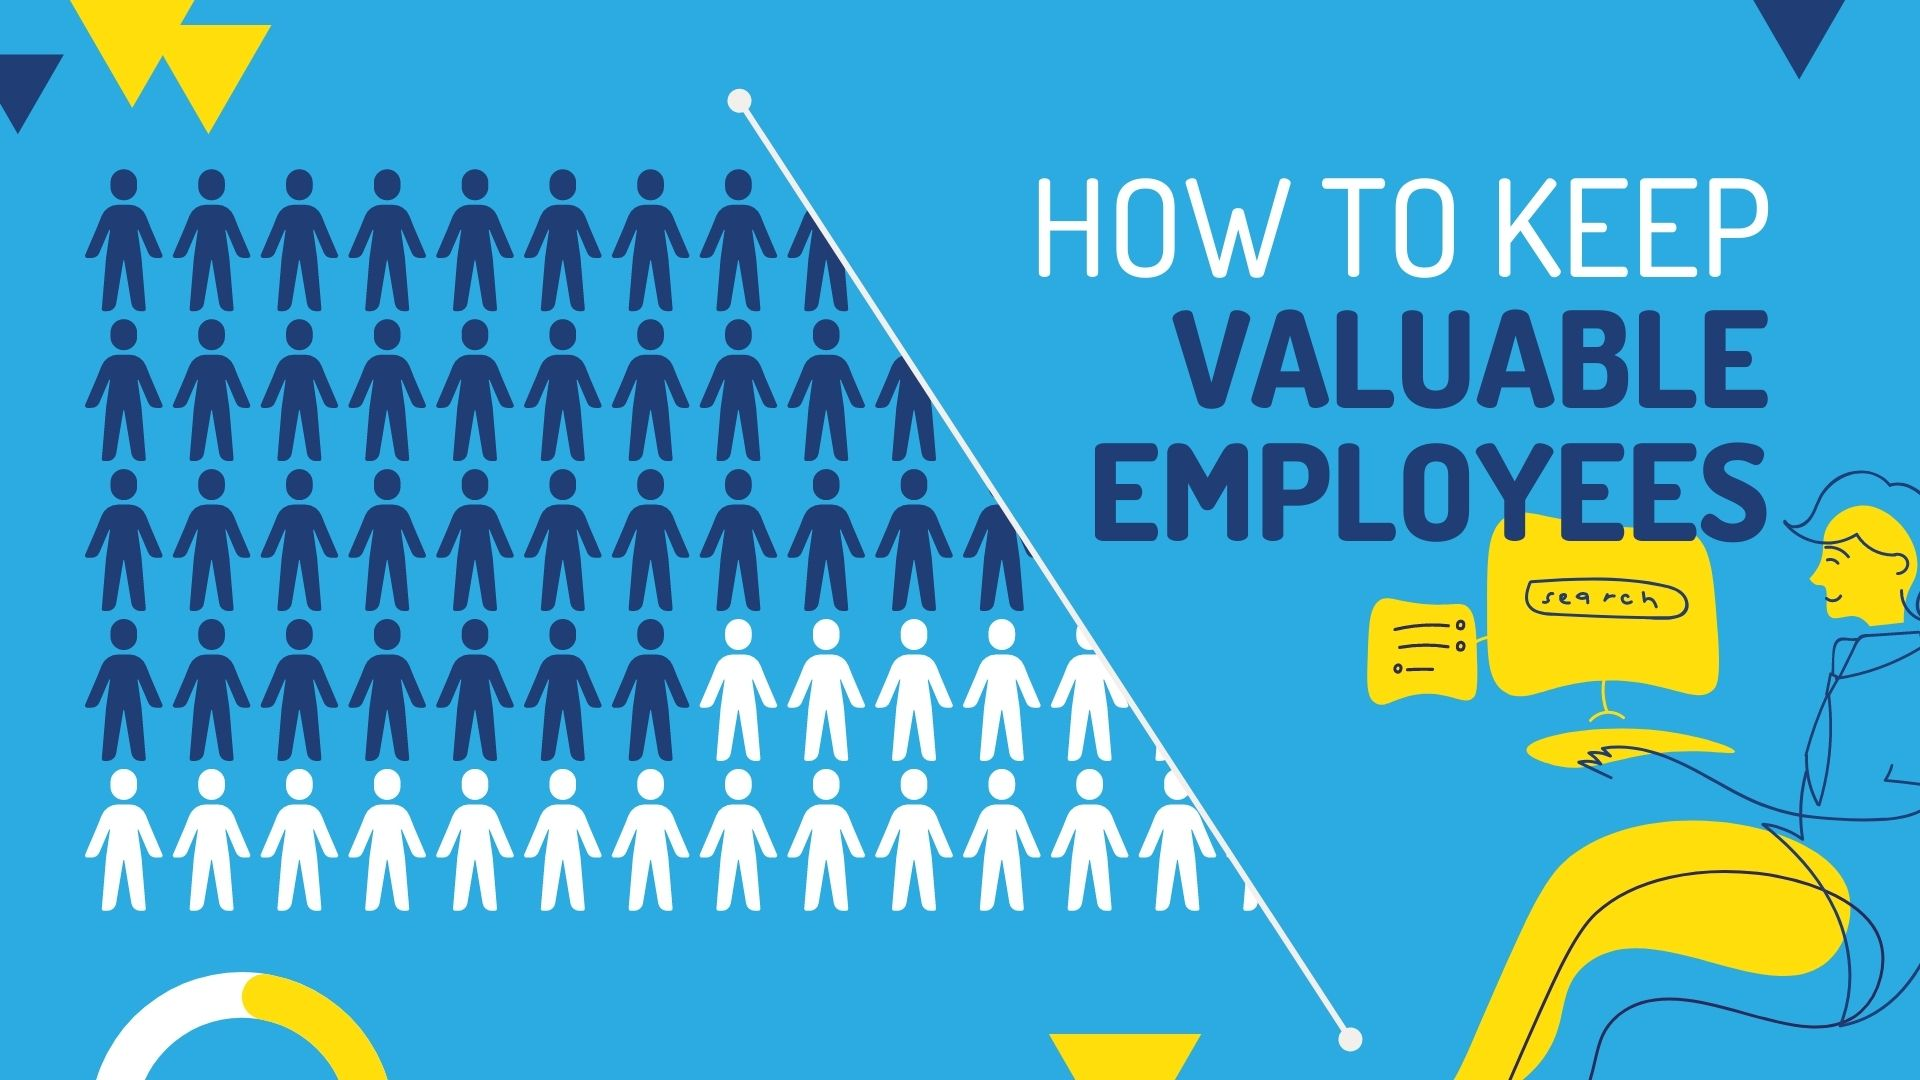 How to Keep Valuable Employees